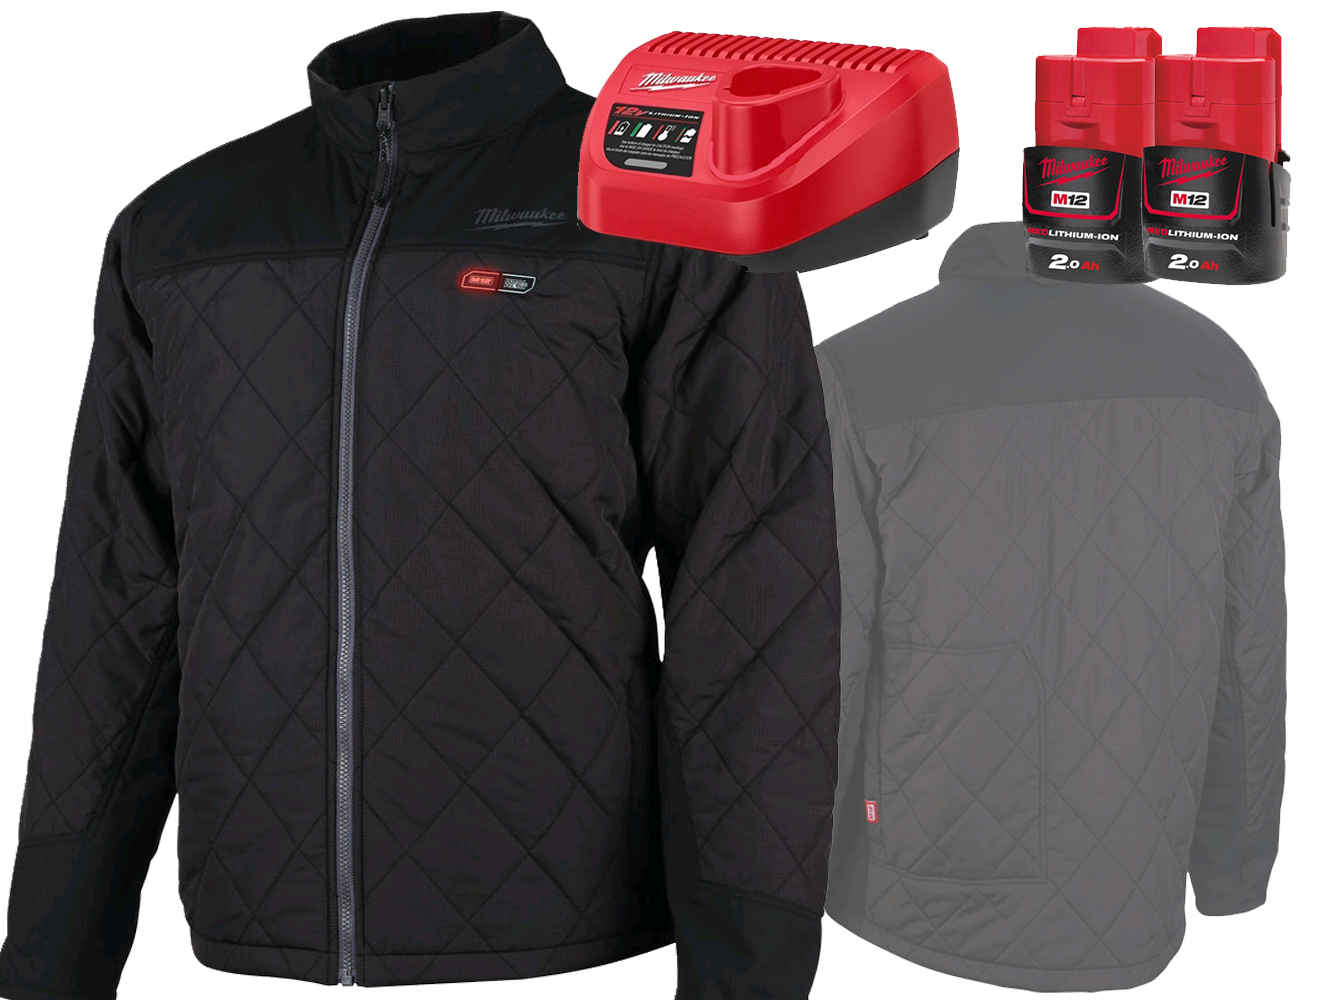 MILWAUKEE 12V BLACK HEATED PUFFER JACKET - GEN 1 - LARGE - 2.0AH PACK